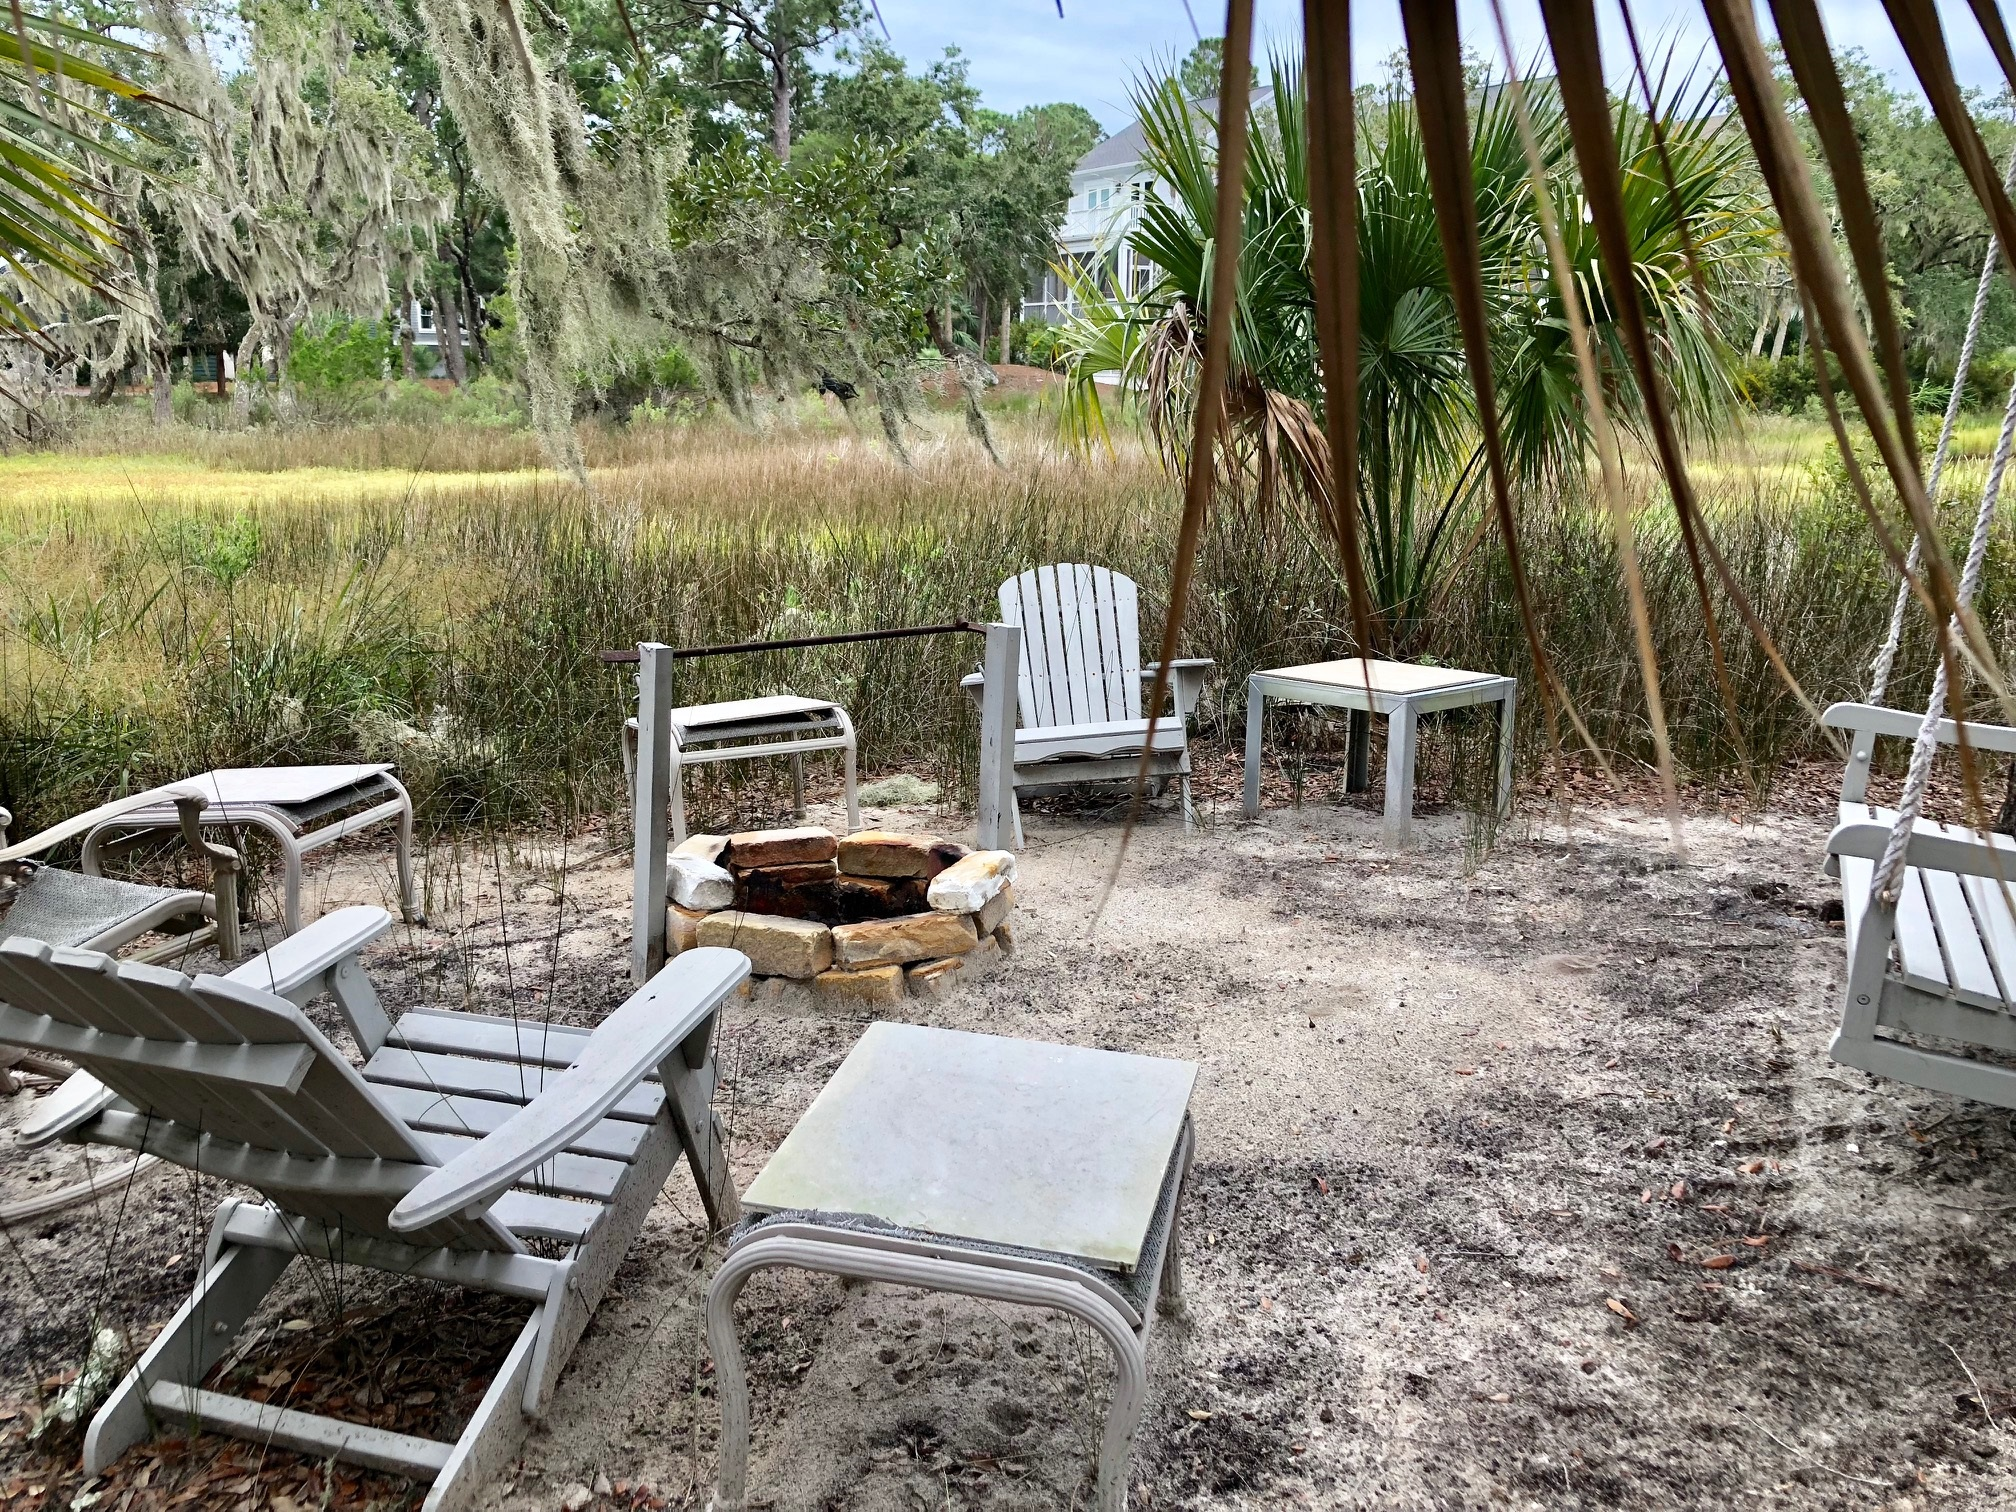 Fire pit adjacent to the marsh